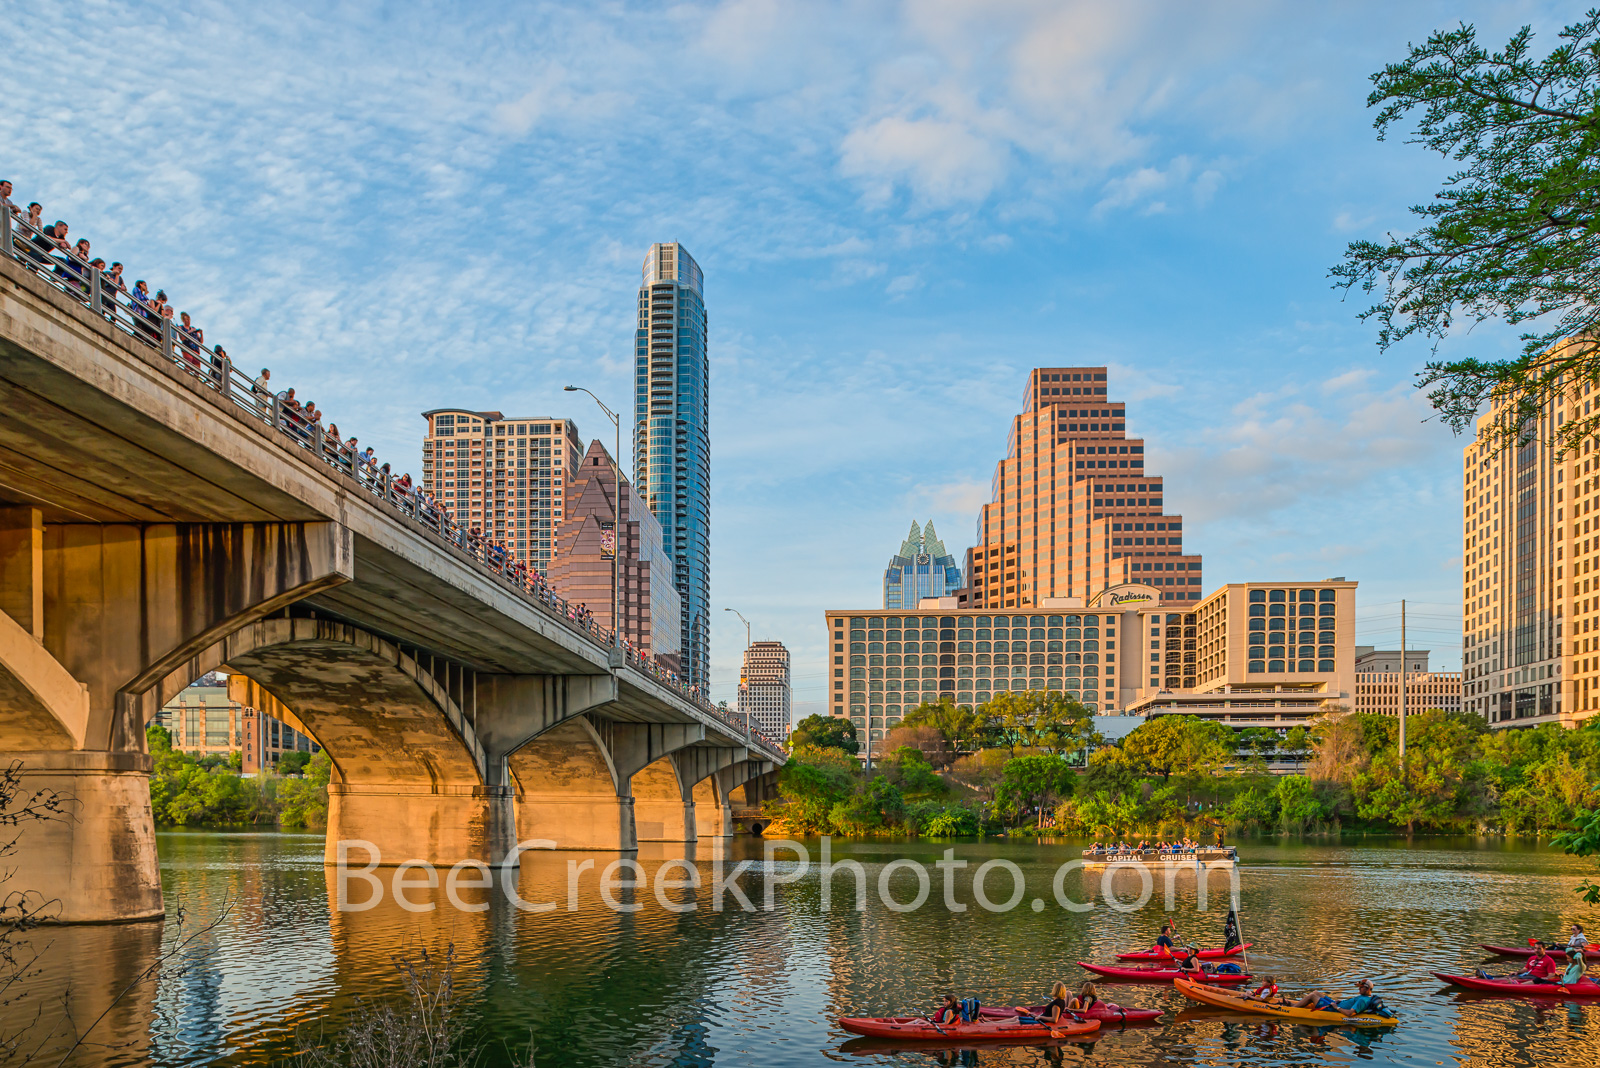 Waiting on the Bats  - This is the nightly bat watch that goes on in Austin Texas with people along the congress bridge and crowds...